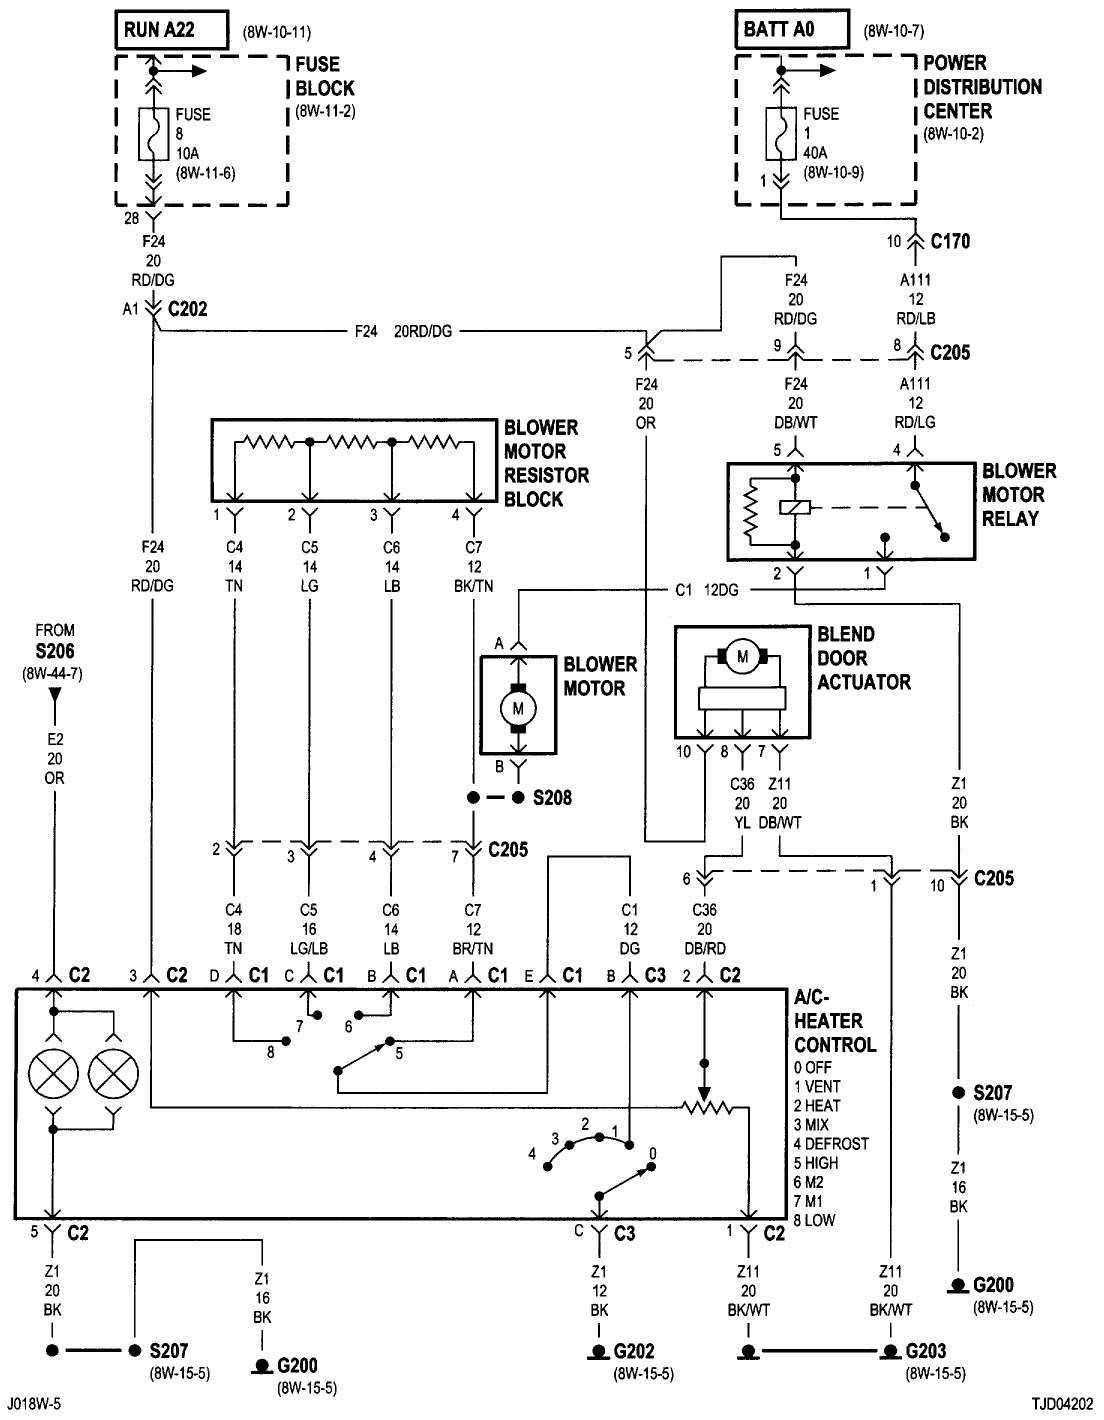 Jeep Transmission Wiring - Wiring Diagram Direct clear-produce -  clear-produce.siciliabeb.it | 2005 Jeep Wrangler Automatic Transmission Diagram Wiring |  | clear-produce.siciliabeb.it